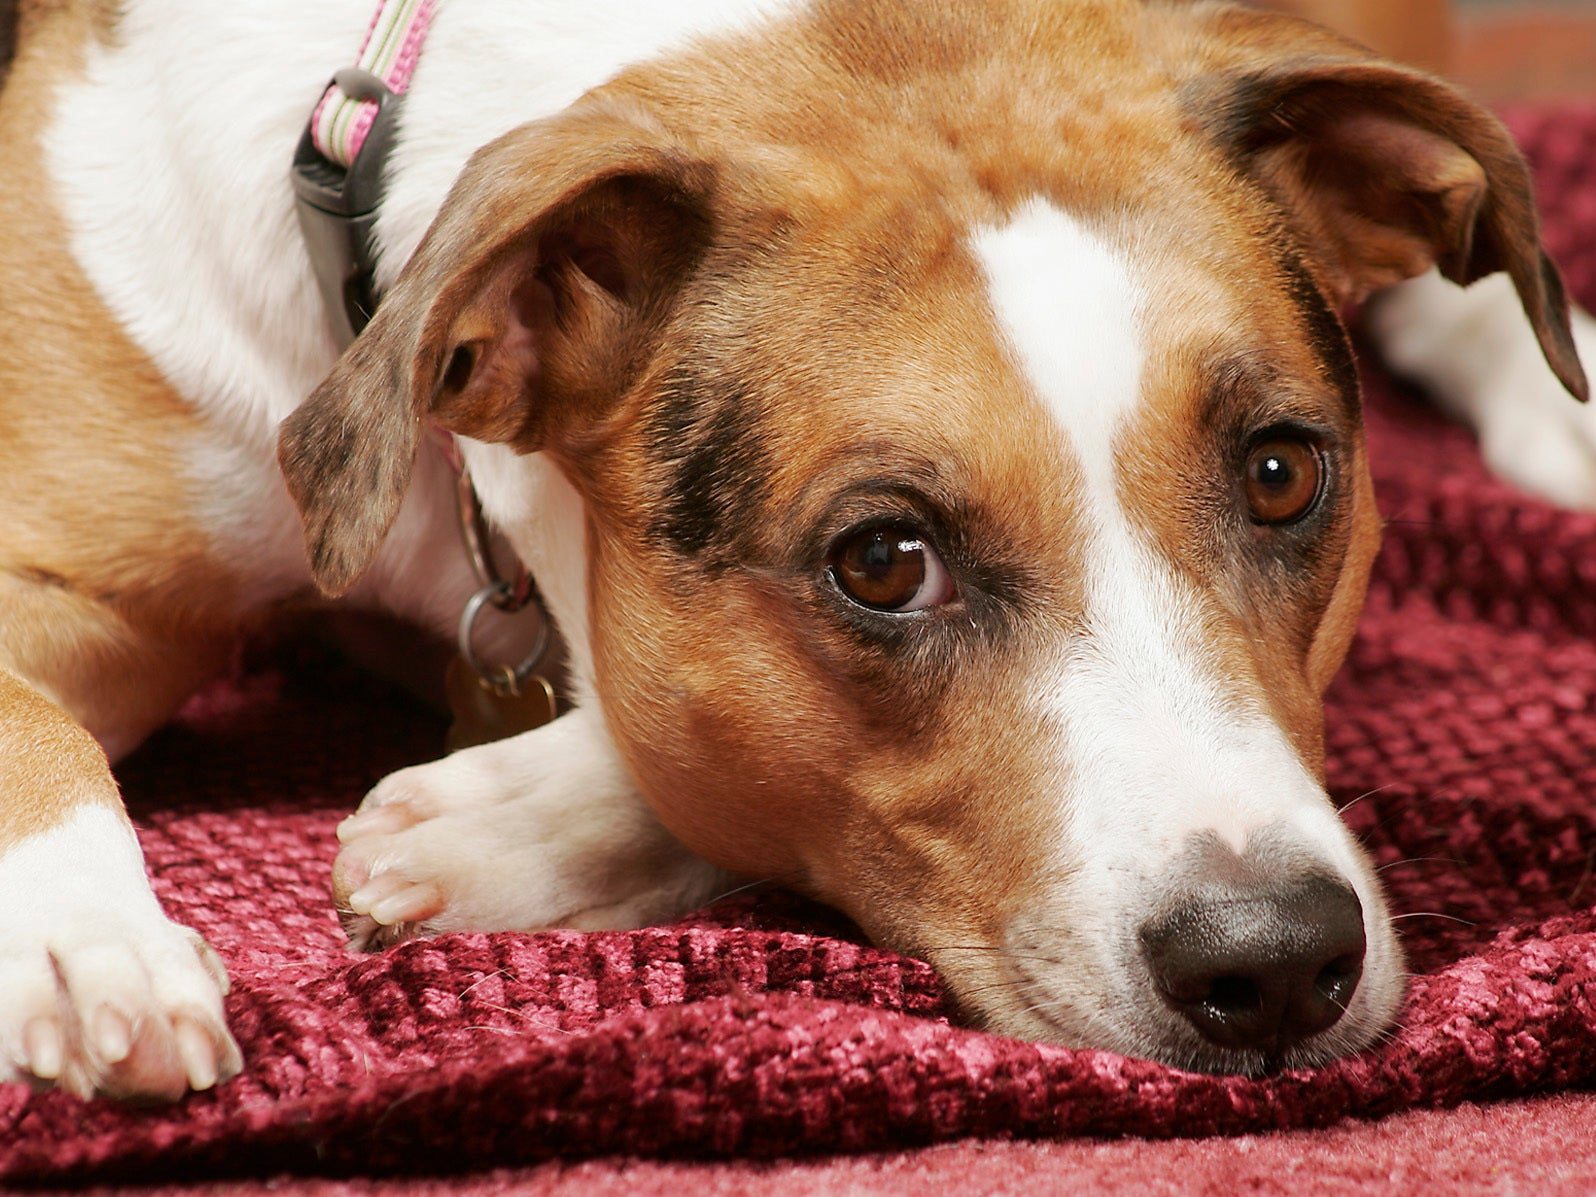 Dogs - latest news, breaking stories and comment - The